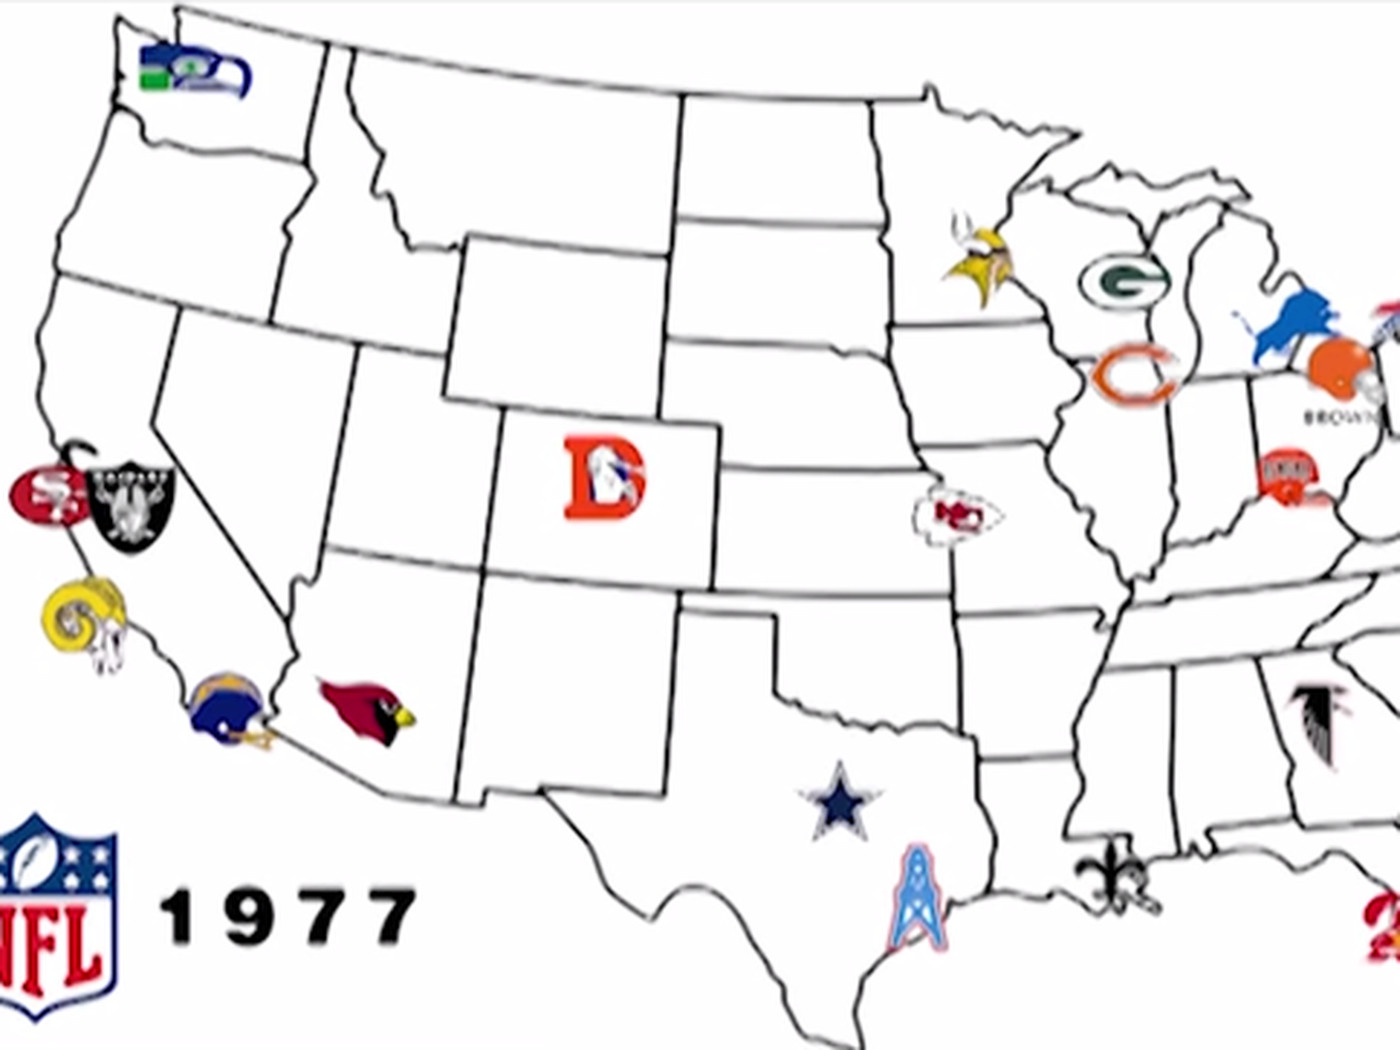 This map shows the NFL's evolution in 2 minutes - SBNation.com Map Nfl Teams on super bowl team map, basketball team map, pittsburgh steelers map, favorite baseball team map, major league baseball team map, fifa team map, nfc team map, nhl team map, new england patriots map, mlb team map, cincinnati reds map, qmjhl team map, nhl fan map, nba team map, ncaa team map, cfl team map, hockey team map, mls team map, washington redskins map, afl team map,